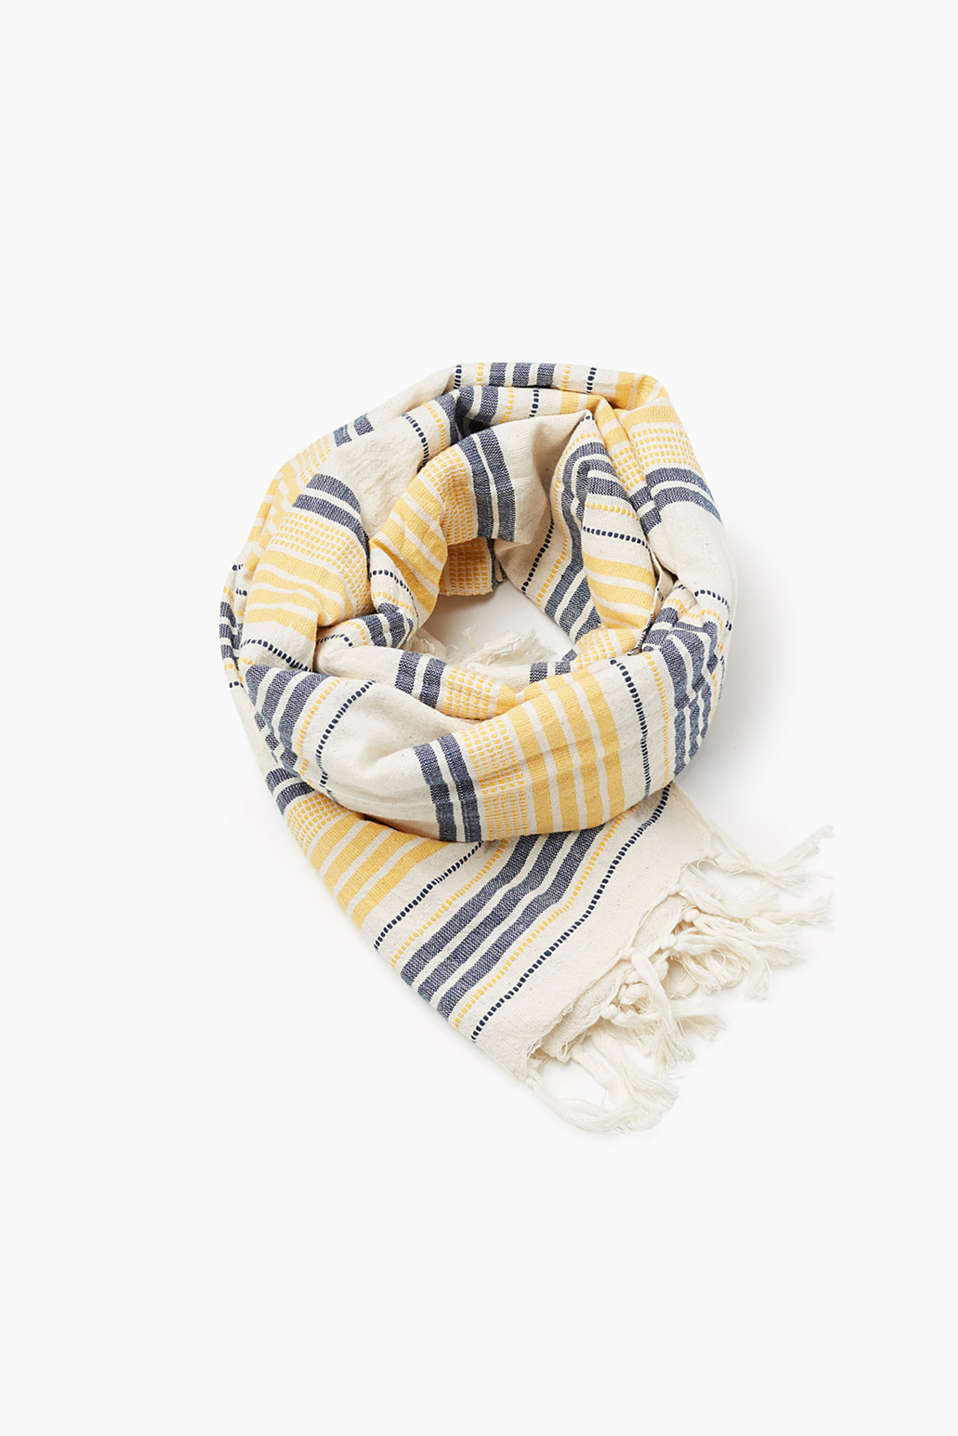 with irregular woven stripes